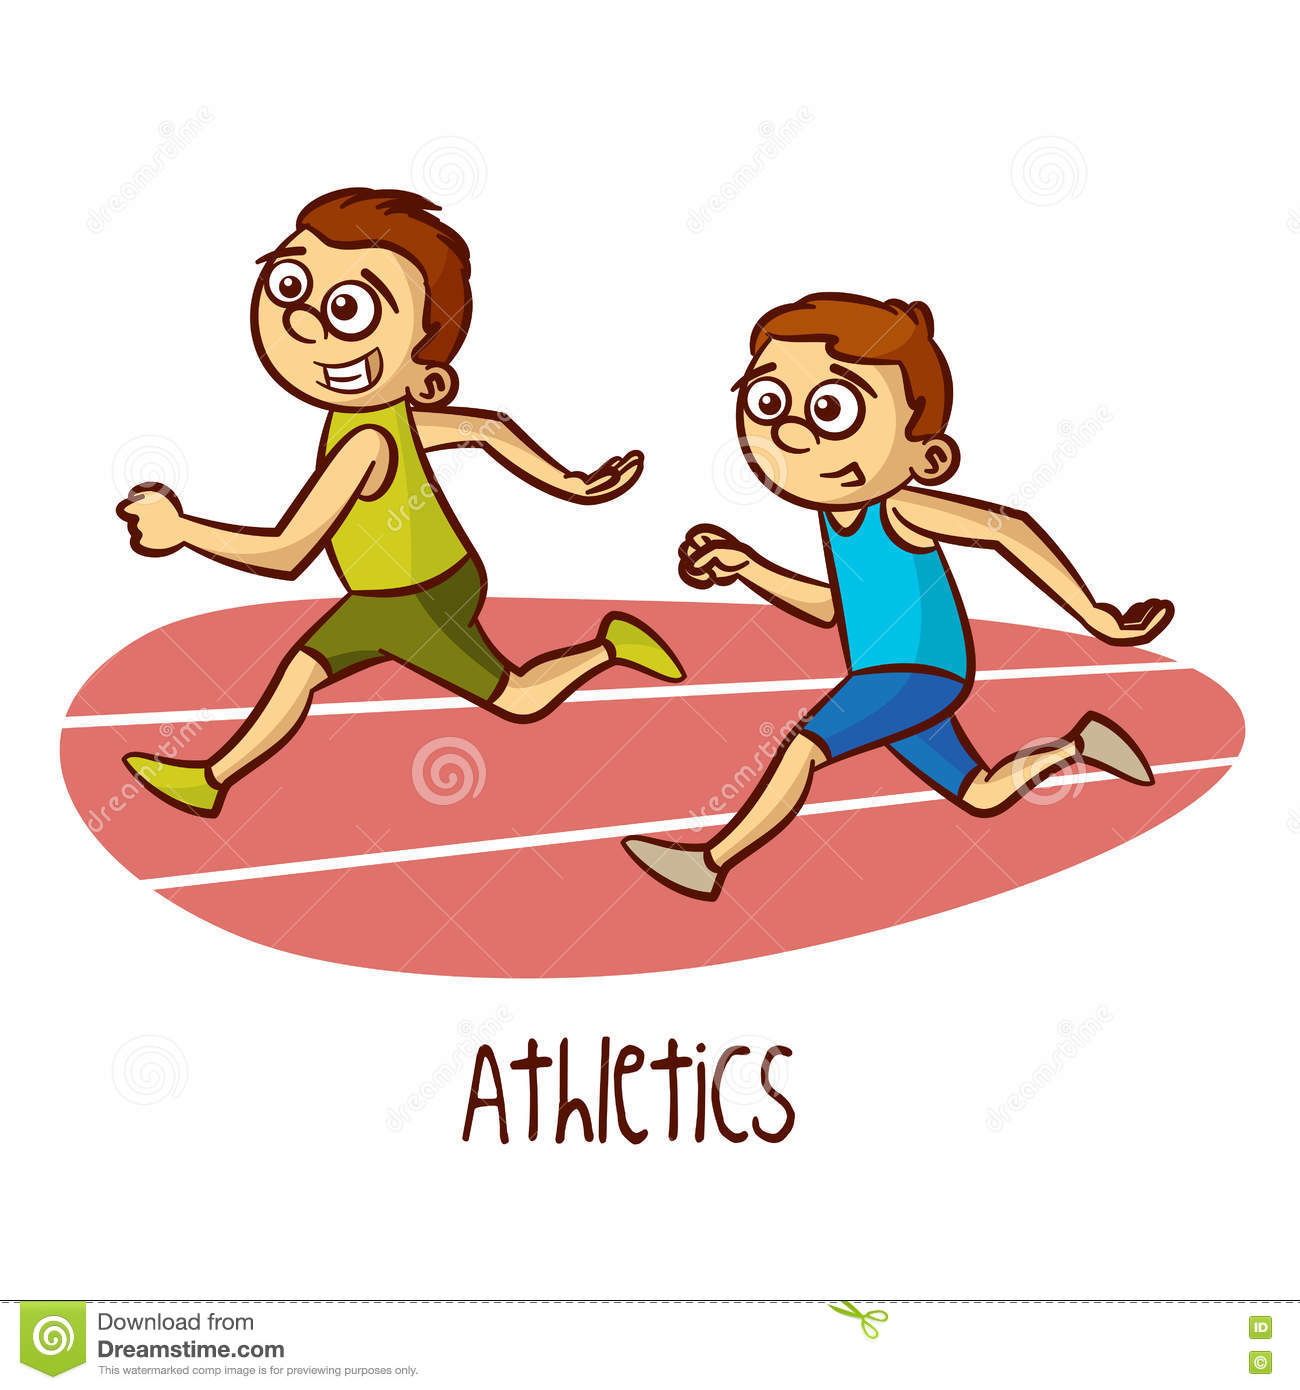 Athletics clipart 20 free Cliparts | Download images on ...